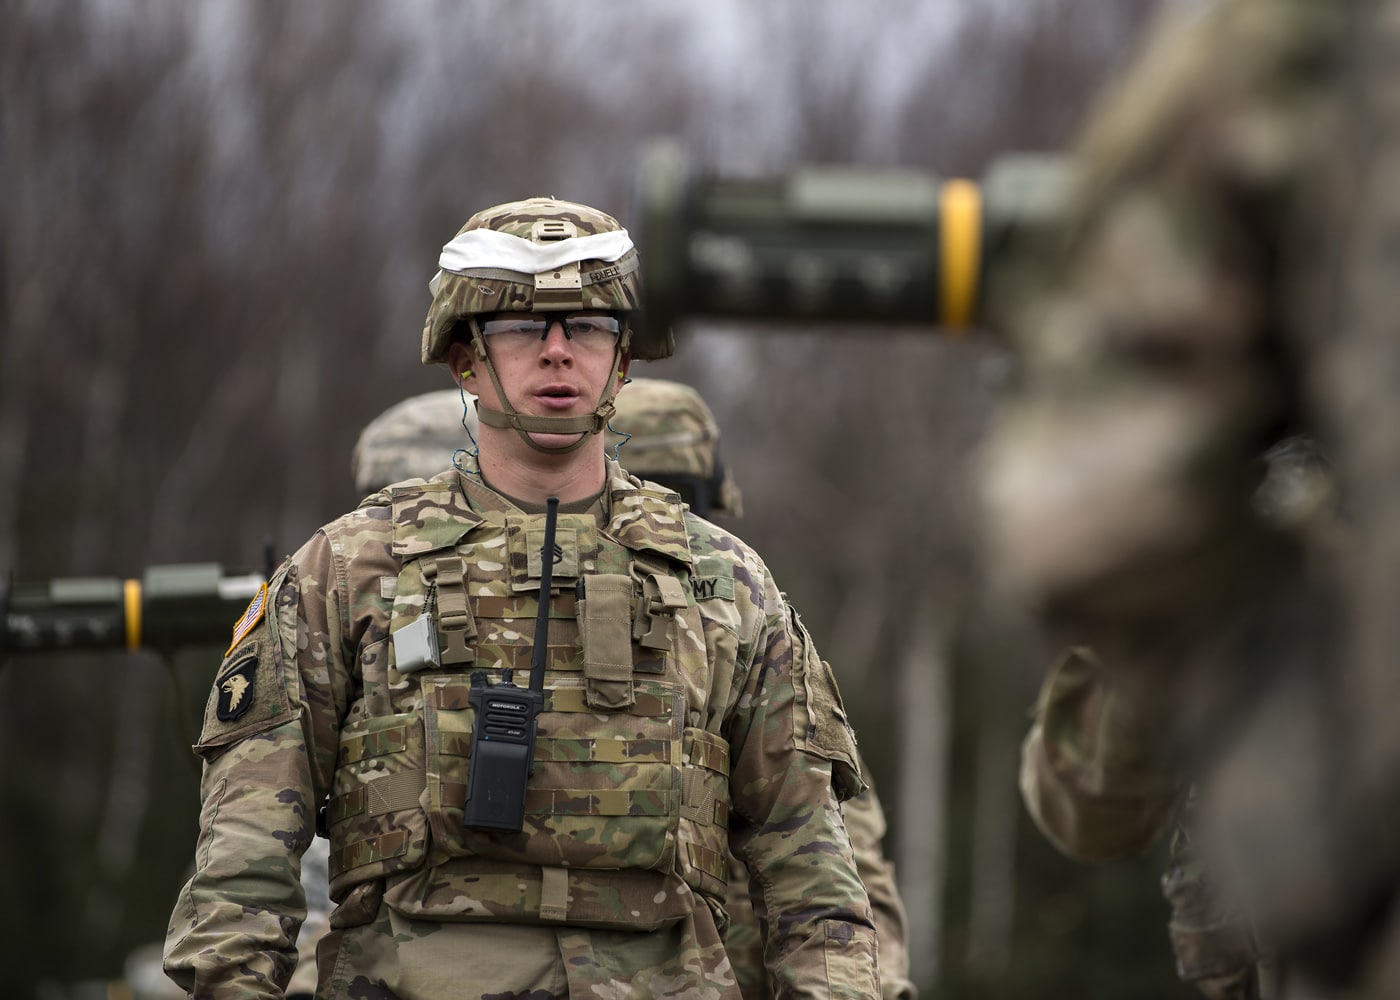 Army Staff Sgt. Matthew Duell, assigned to the 109th Transportation Company, 17th Combat Sustainment Support Battalion, U.S. Army Alaska, provides safety support during a live fire of the M136E1 AT4-CS confined space light anti-armor weapon at Joint Base Elmendorf-Richardson, Alaska.